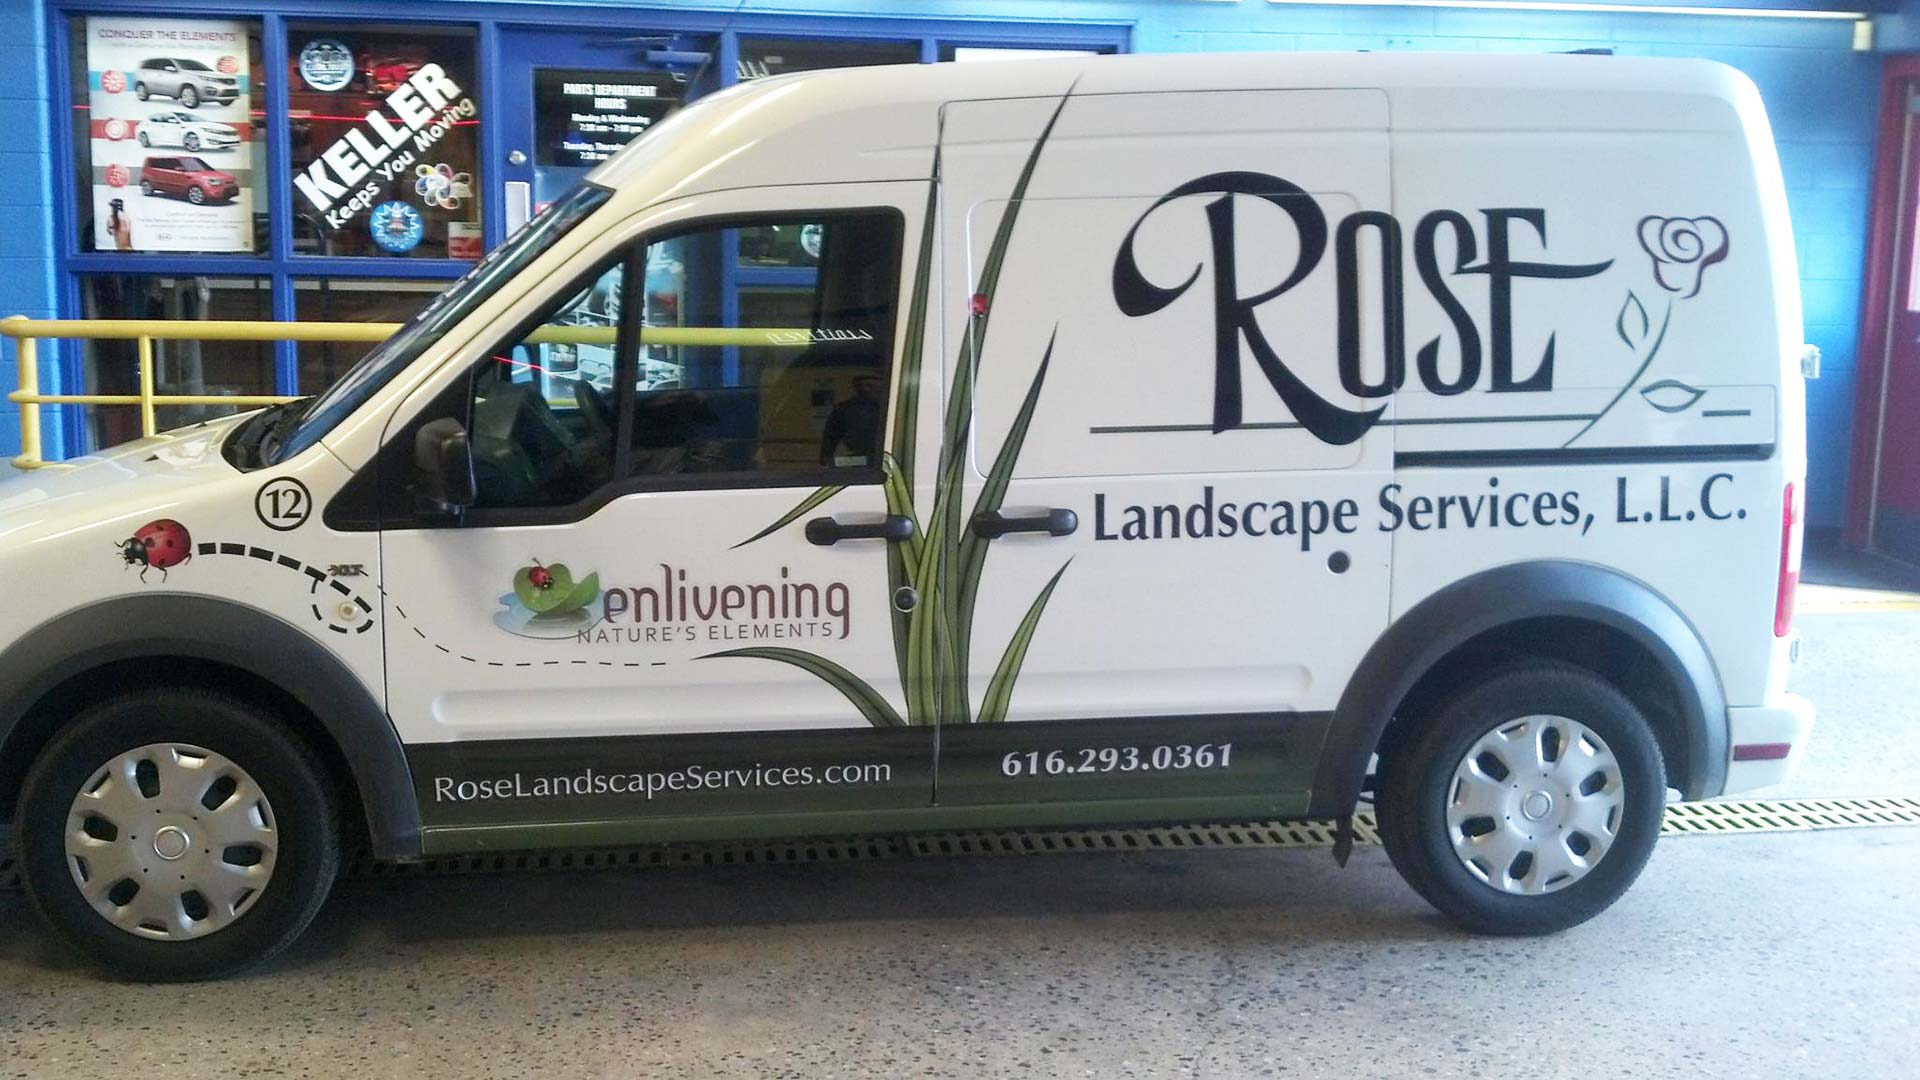 Landscaping company work van with logo and phone number.